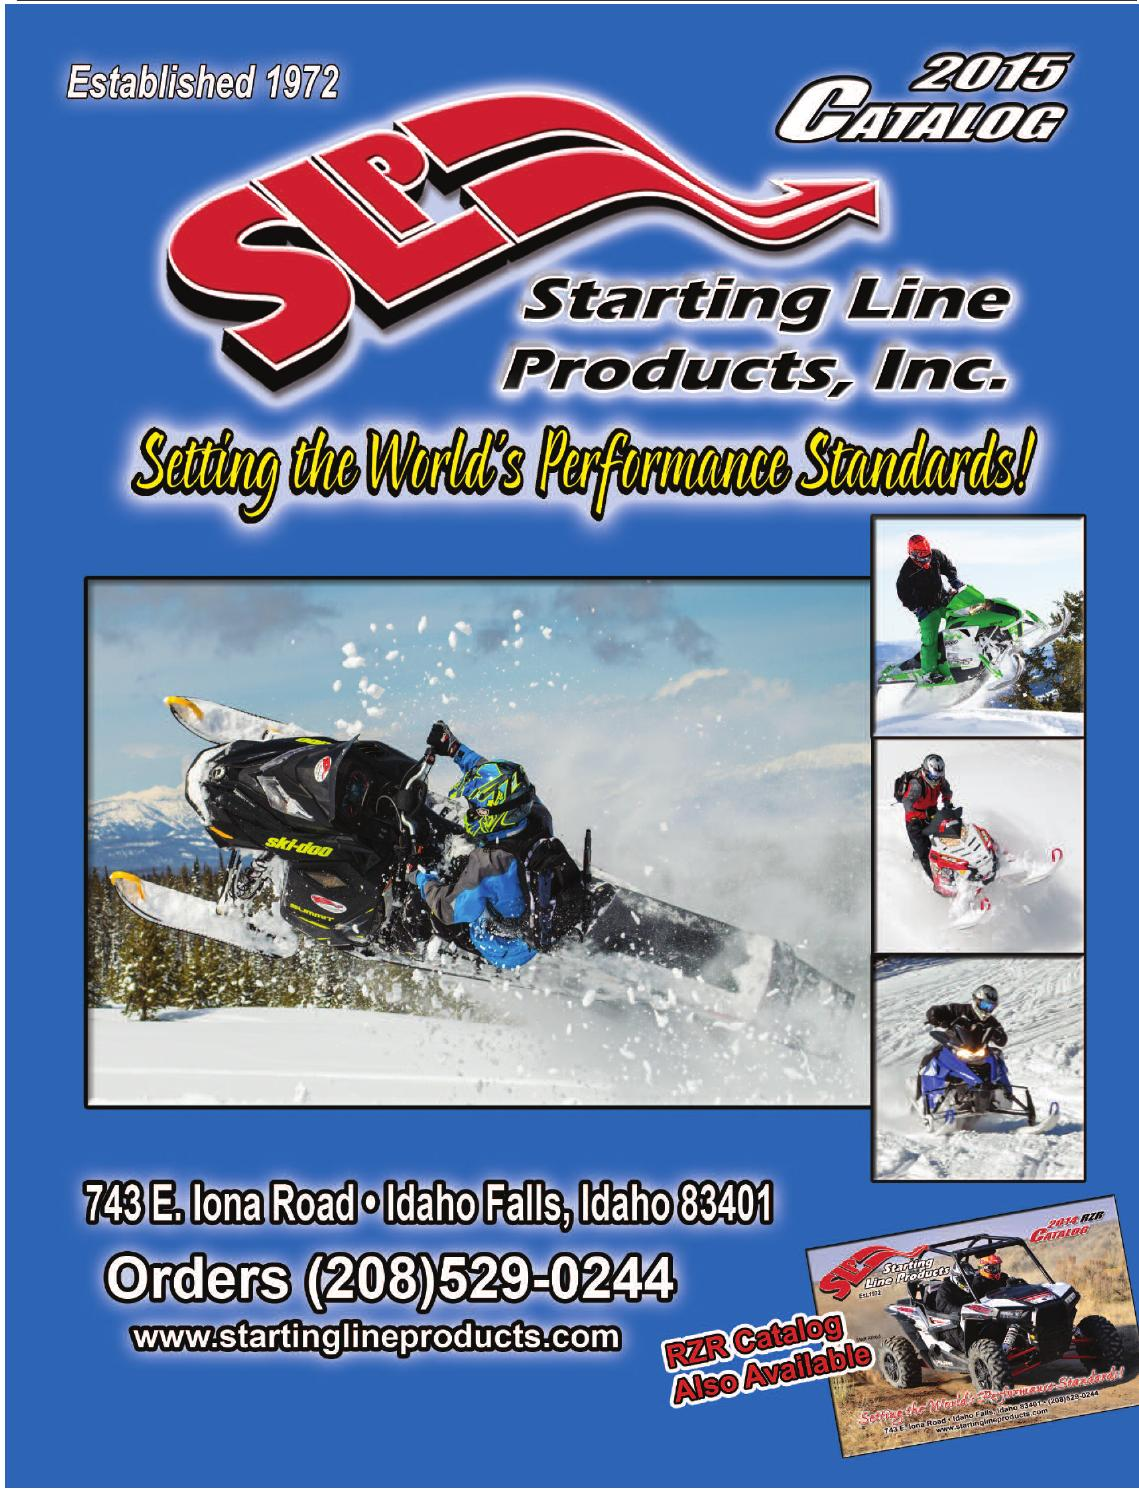 2015 catalog by Starting Line Products - issuu